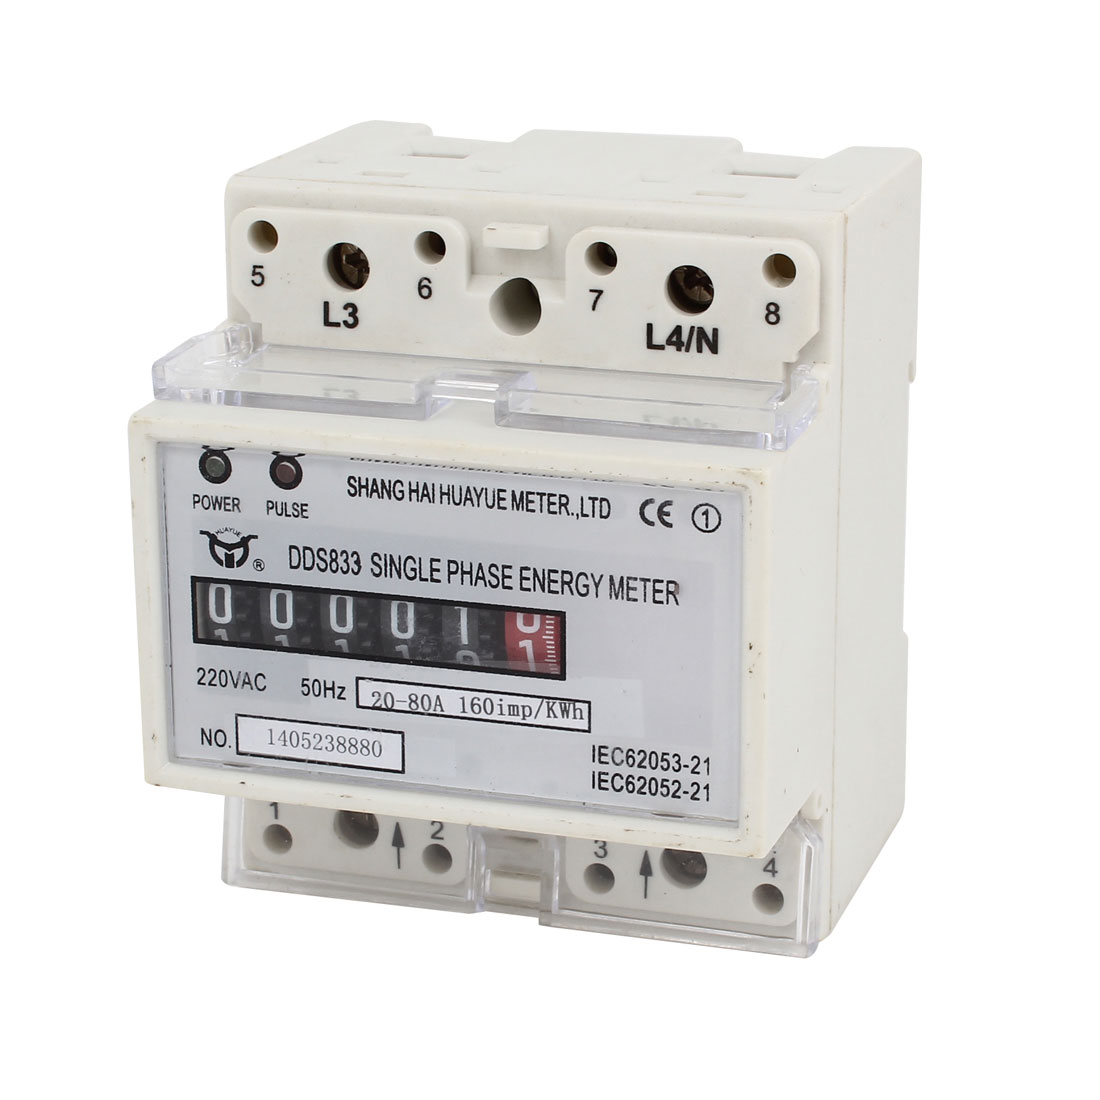 DDS833 Wall Mounting 0-99999.9 6-Digits Single Phase Kilowatt Hour Watt-Hour Energy Meter AC220V 20-80A